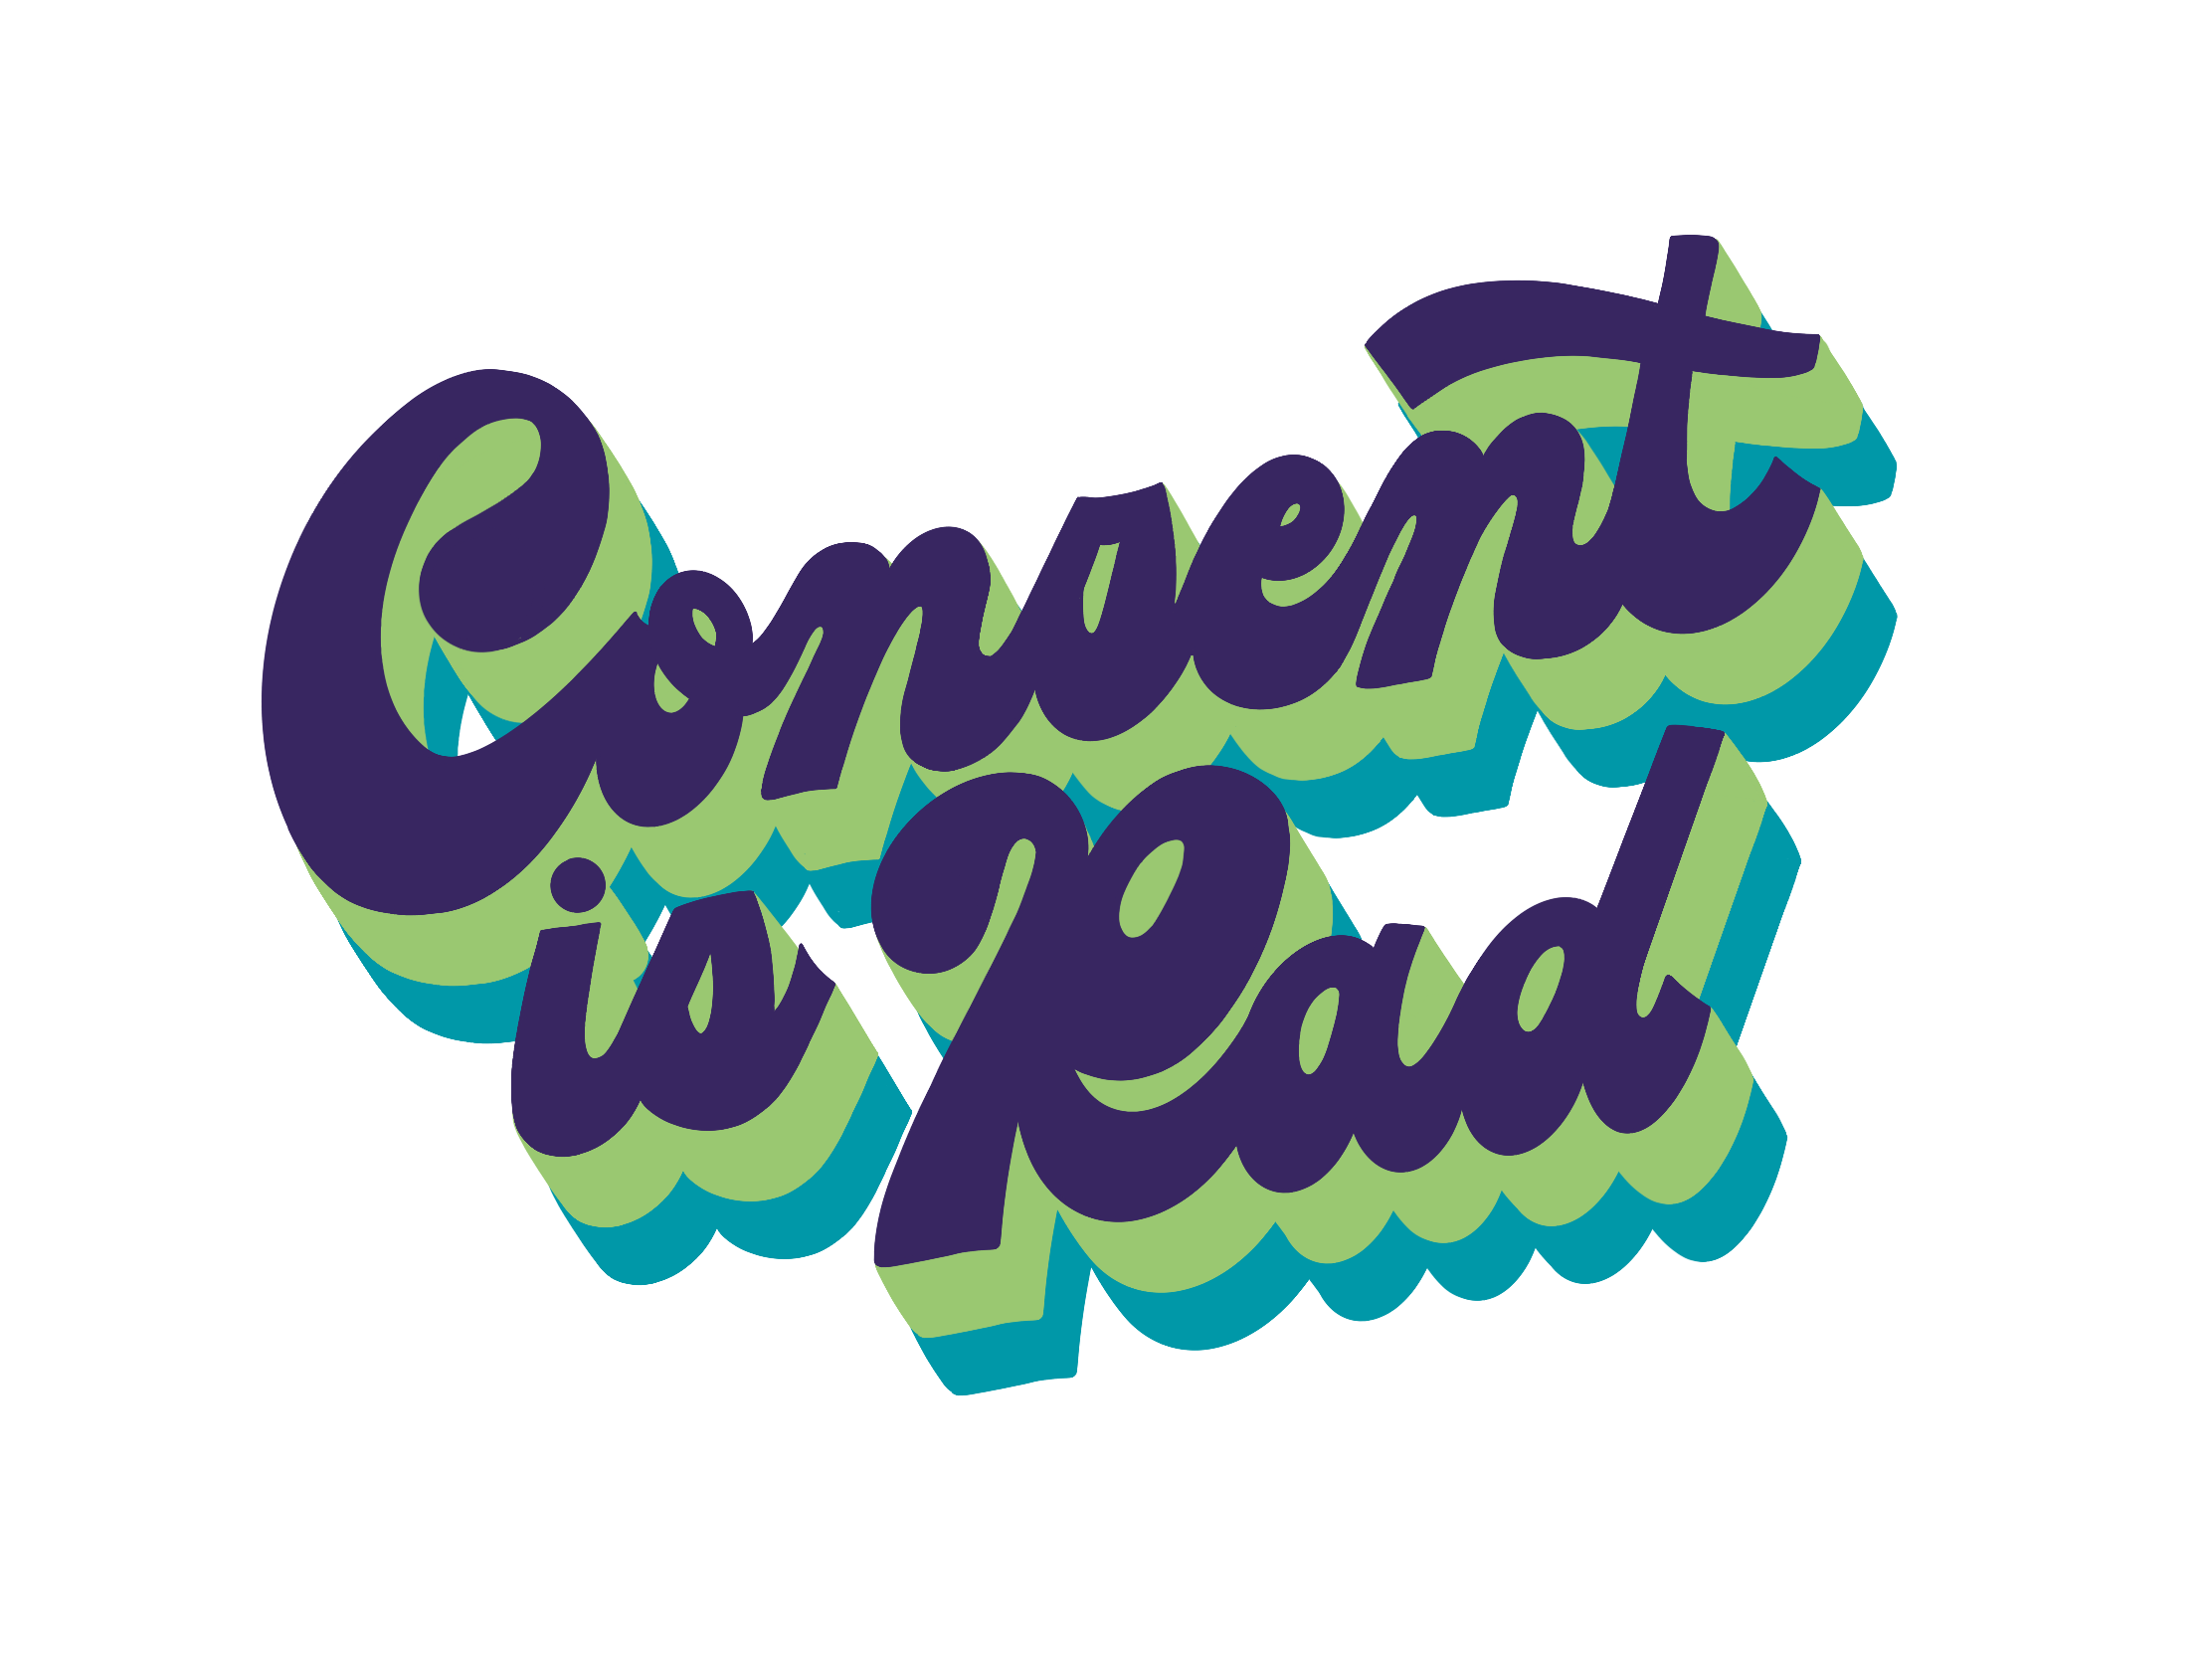 Consent is Rad! Designed for Uplift by Kat Schober